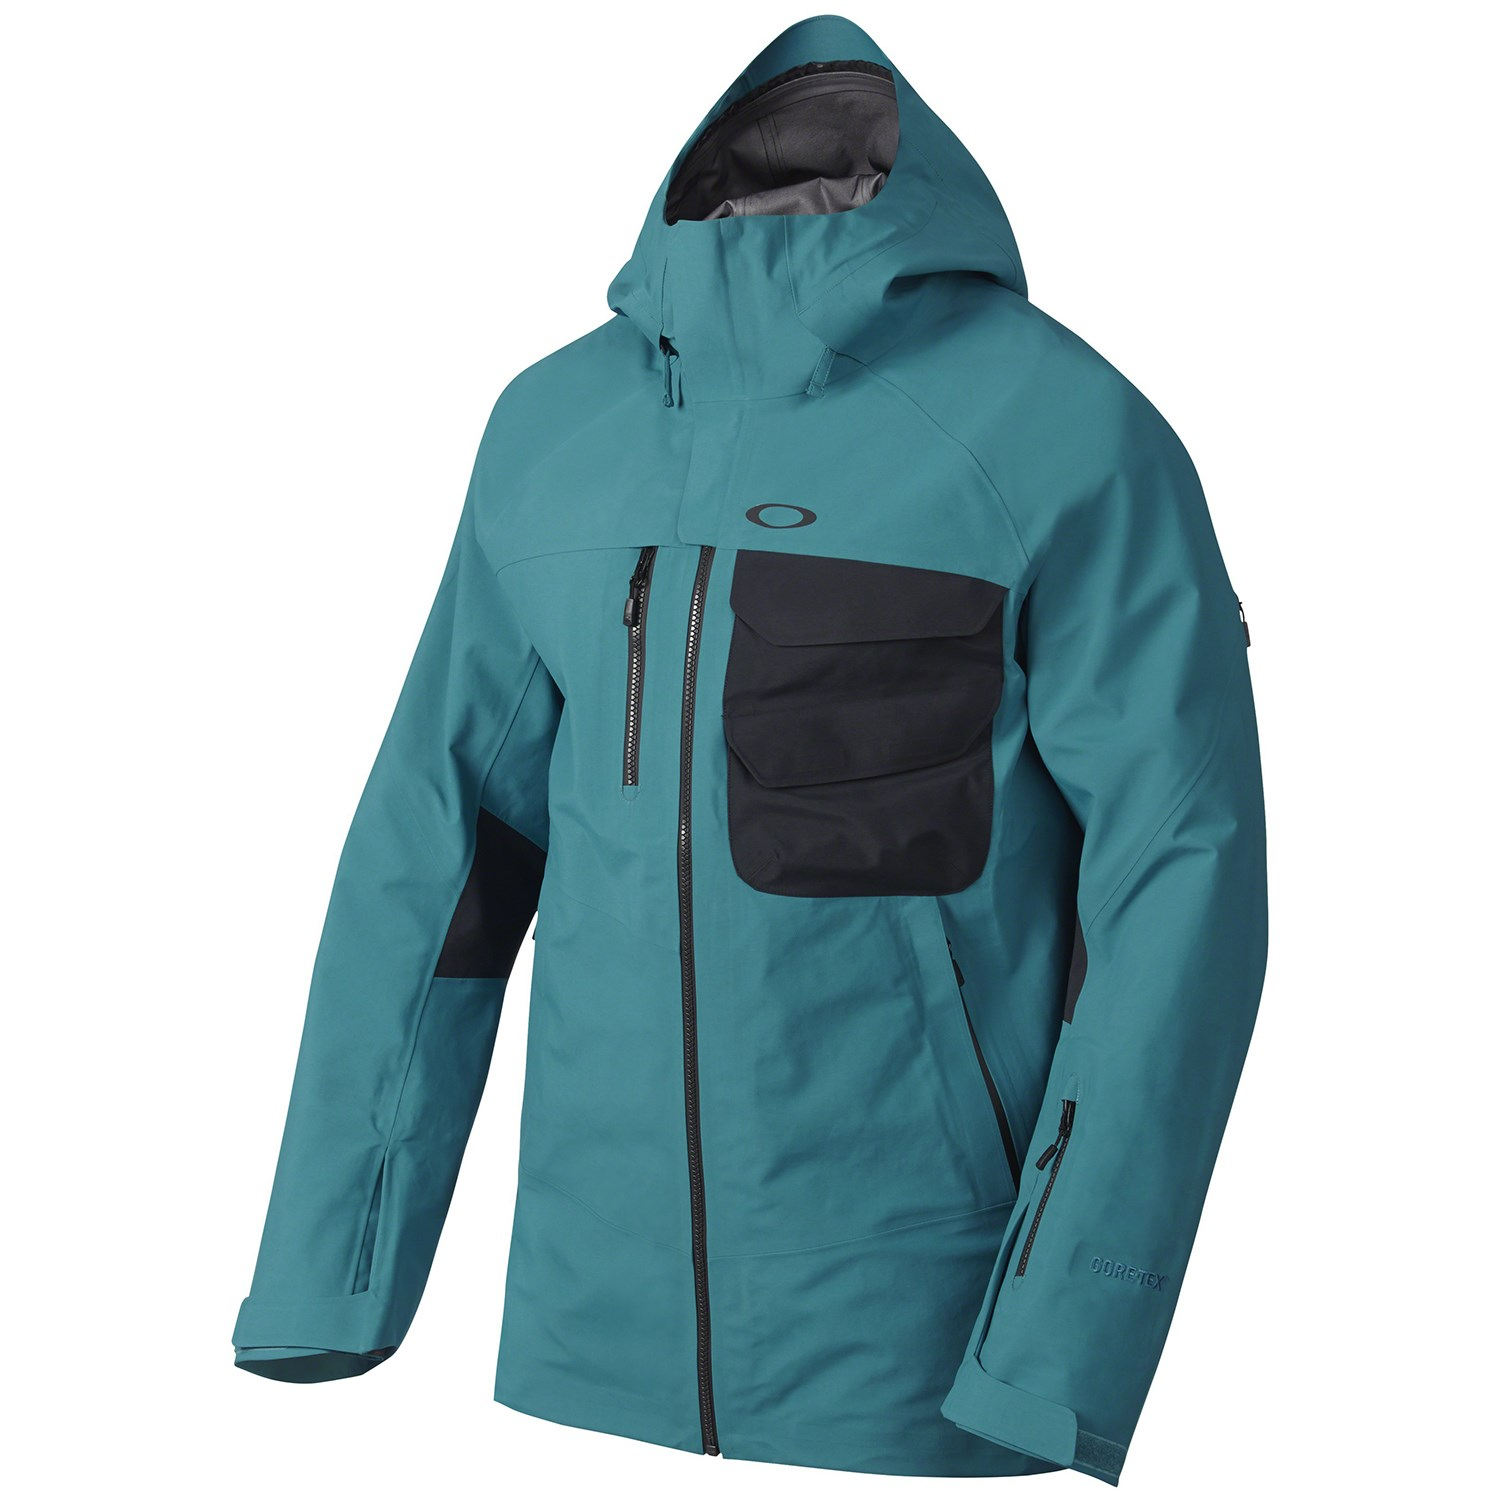 oakley ski jackets on sale  oakley solitude gore tex? 3l jacket